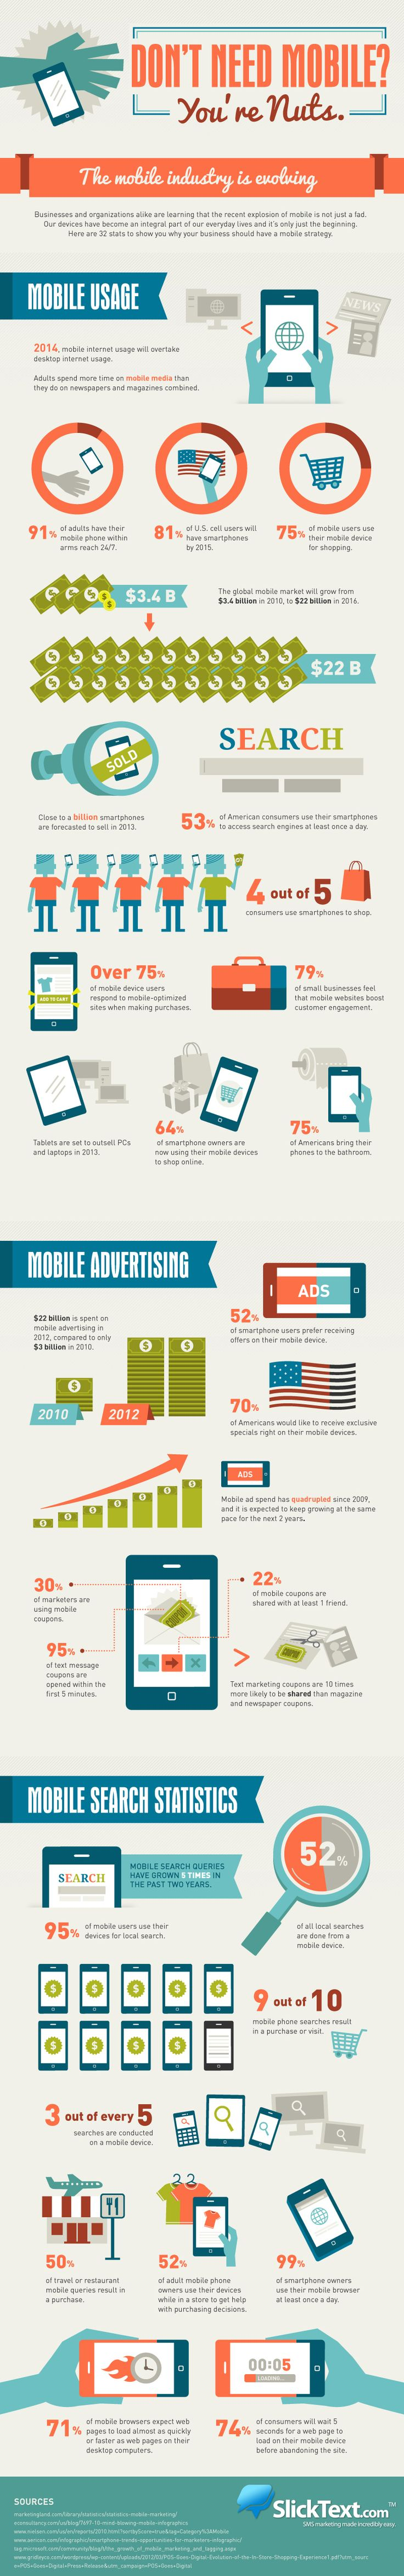 32 statistics/reasons you need a #mobile #marketing strategy http://www.ezanga.com/news/2013/08/05/mobile-usage-stats/